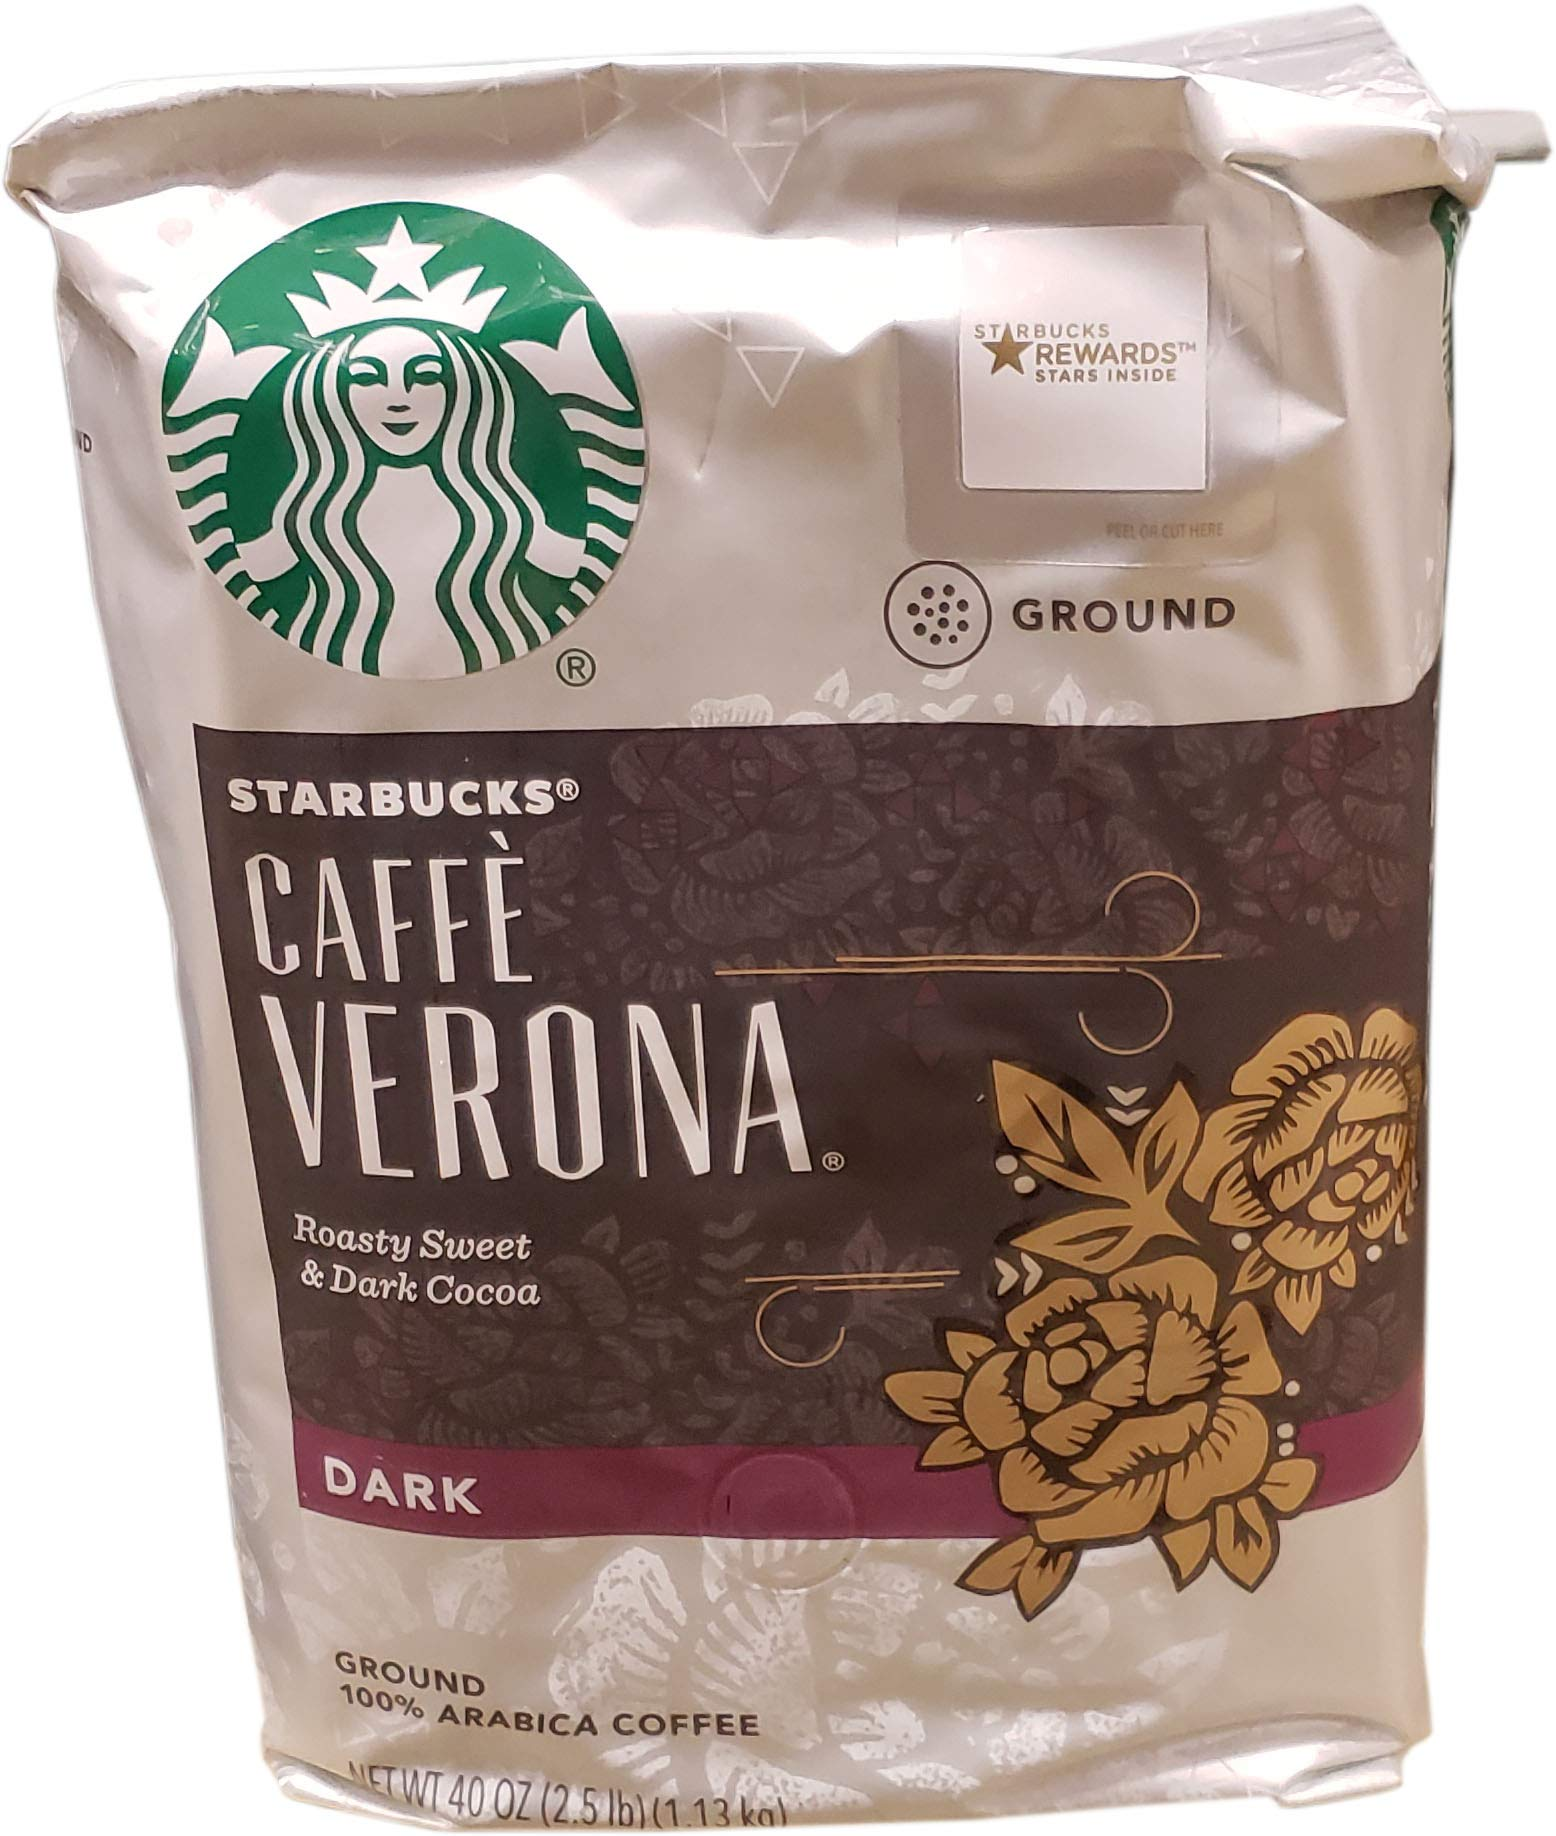 starbucks winter blend costco review